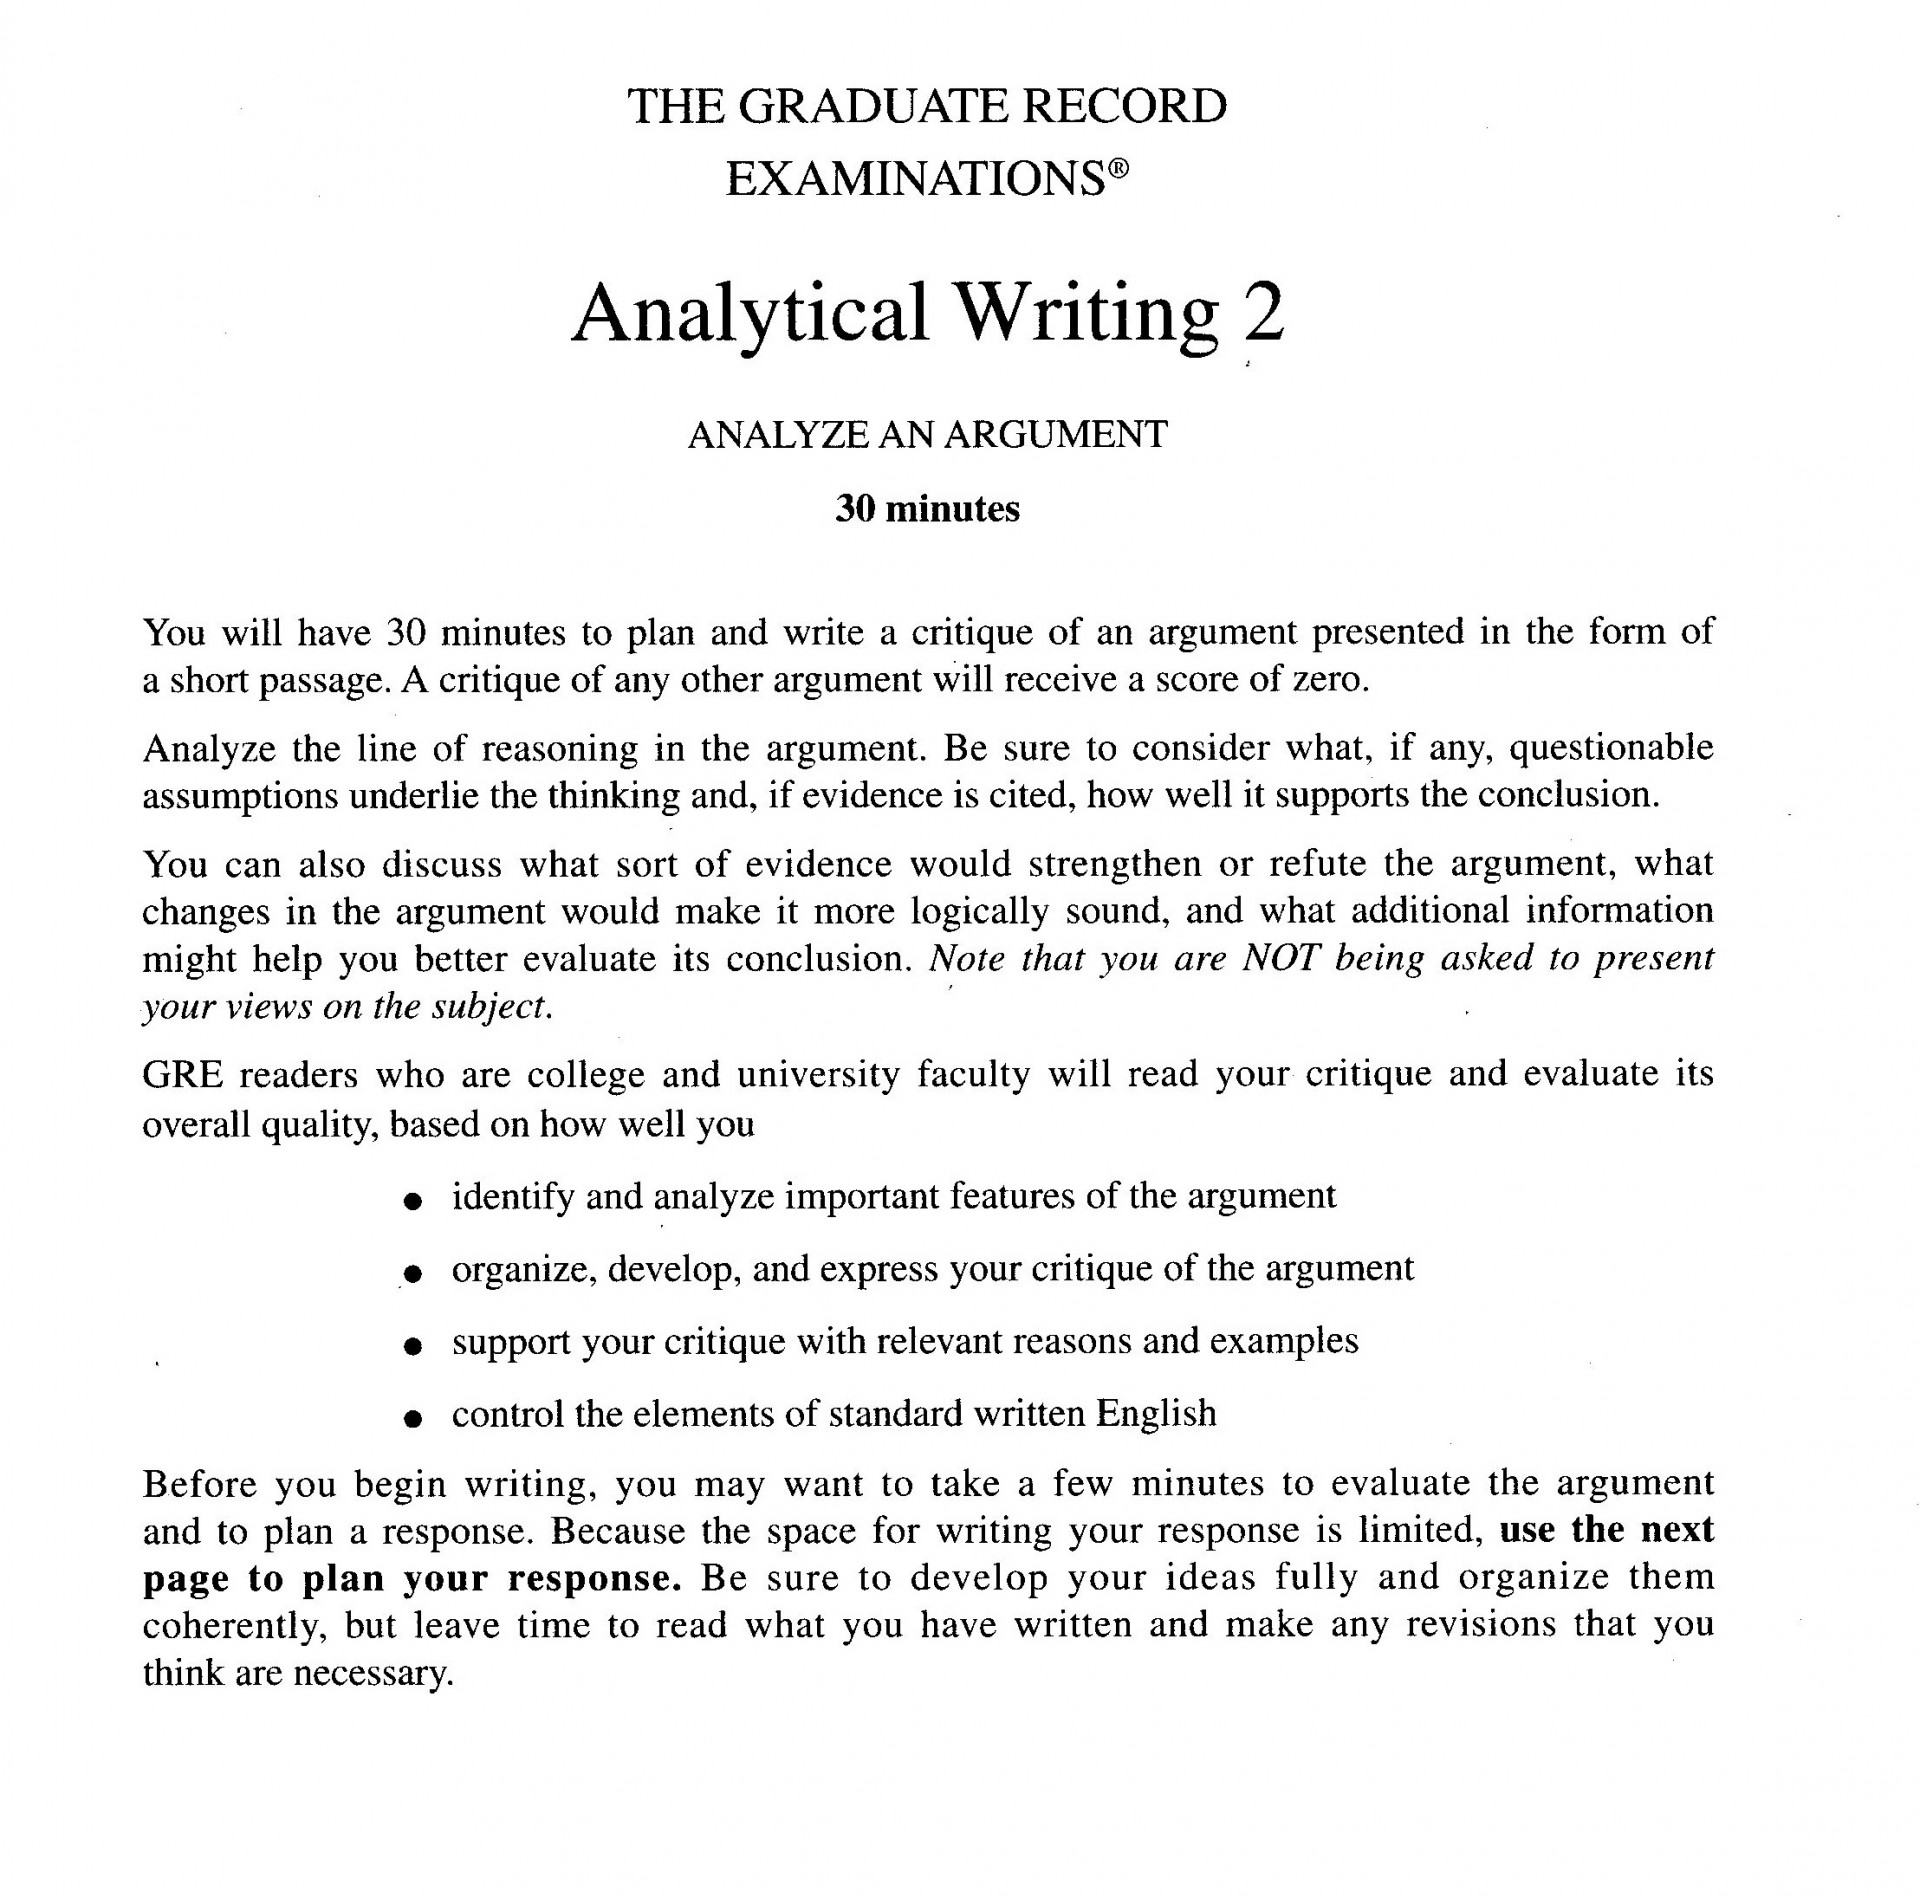 006 Analytical Writing Response Task Directions For Gre Samples Essay Example Sample Unique Essays Topics Practice Argument Prompts 1920